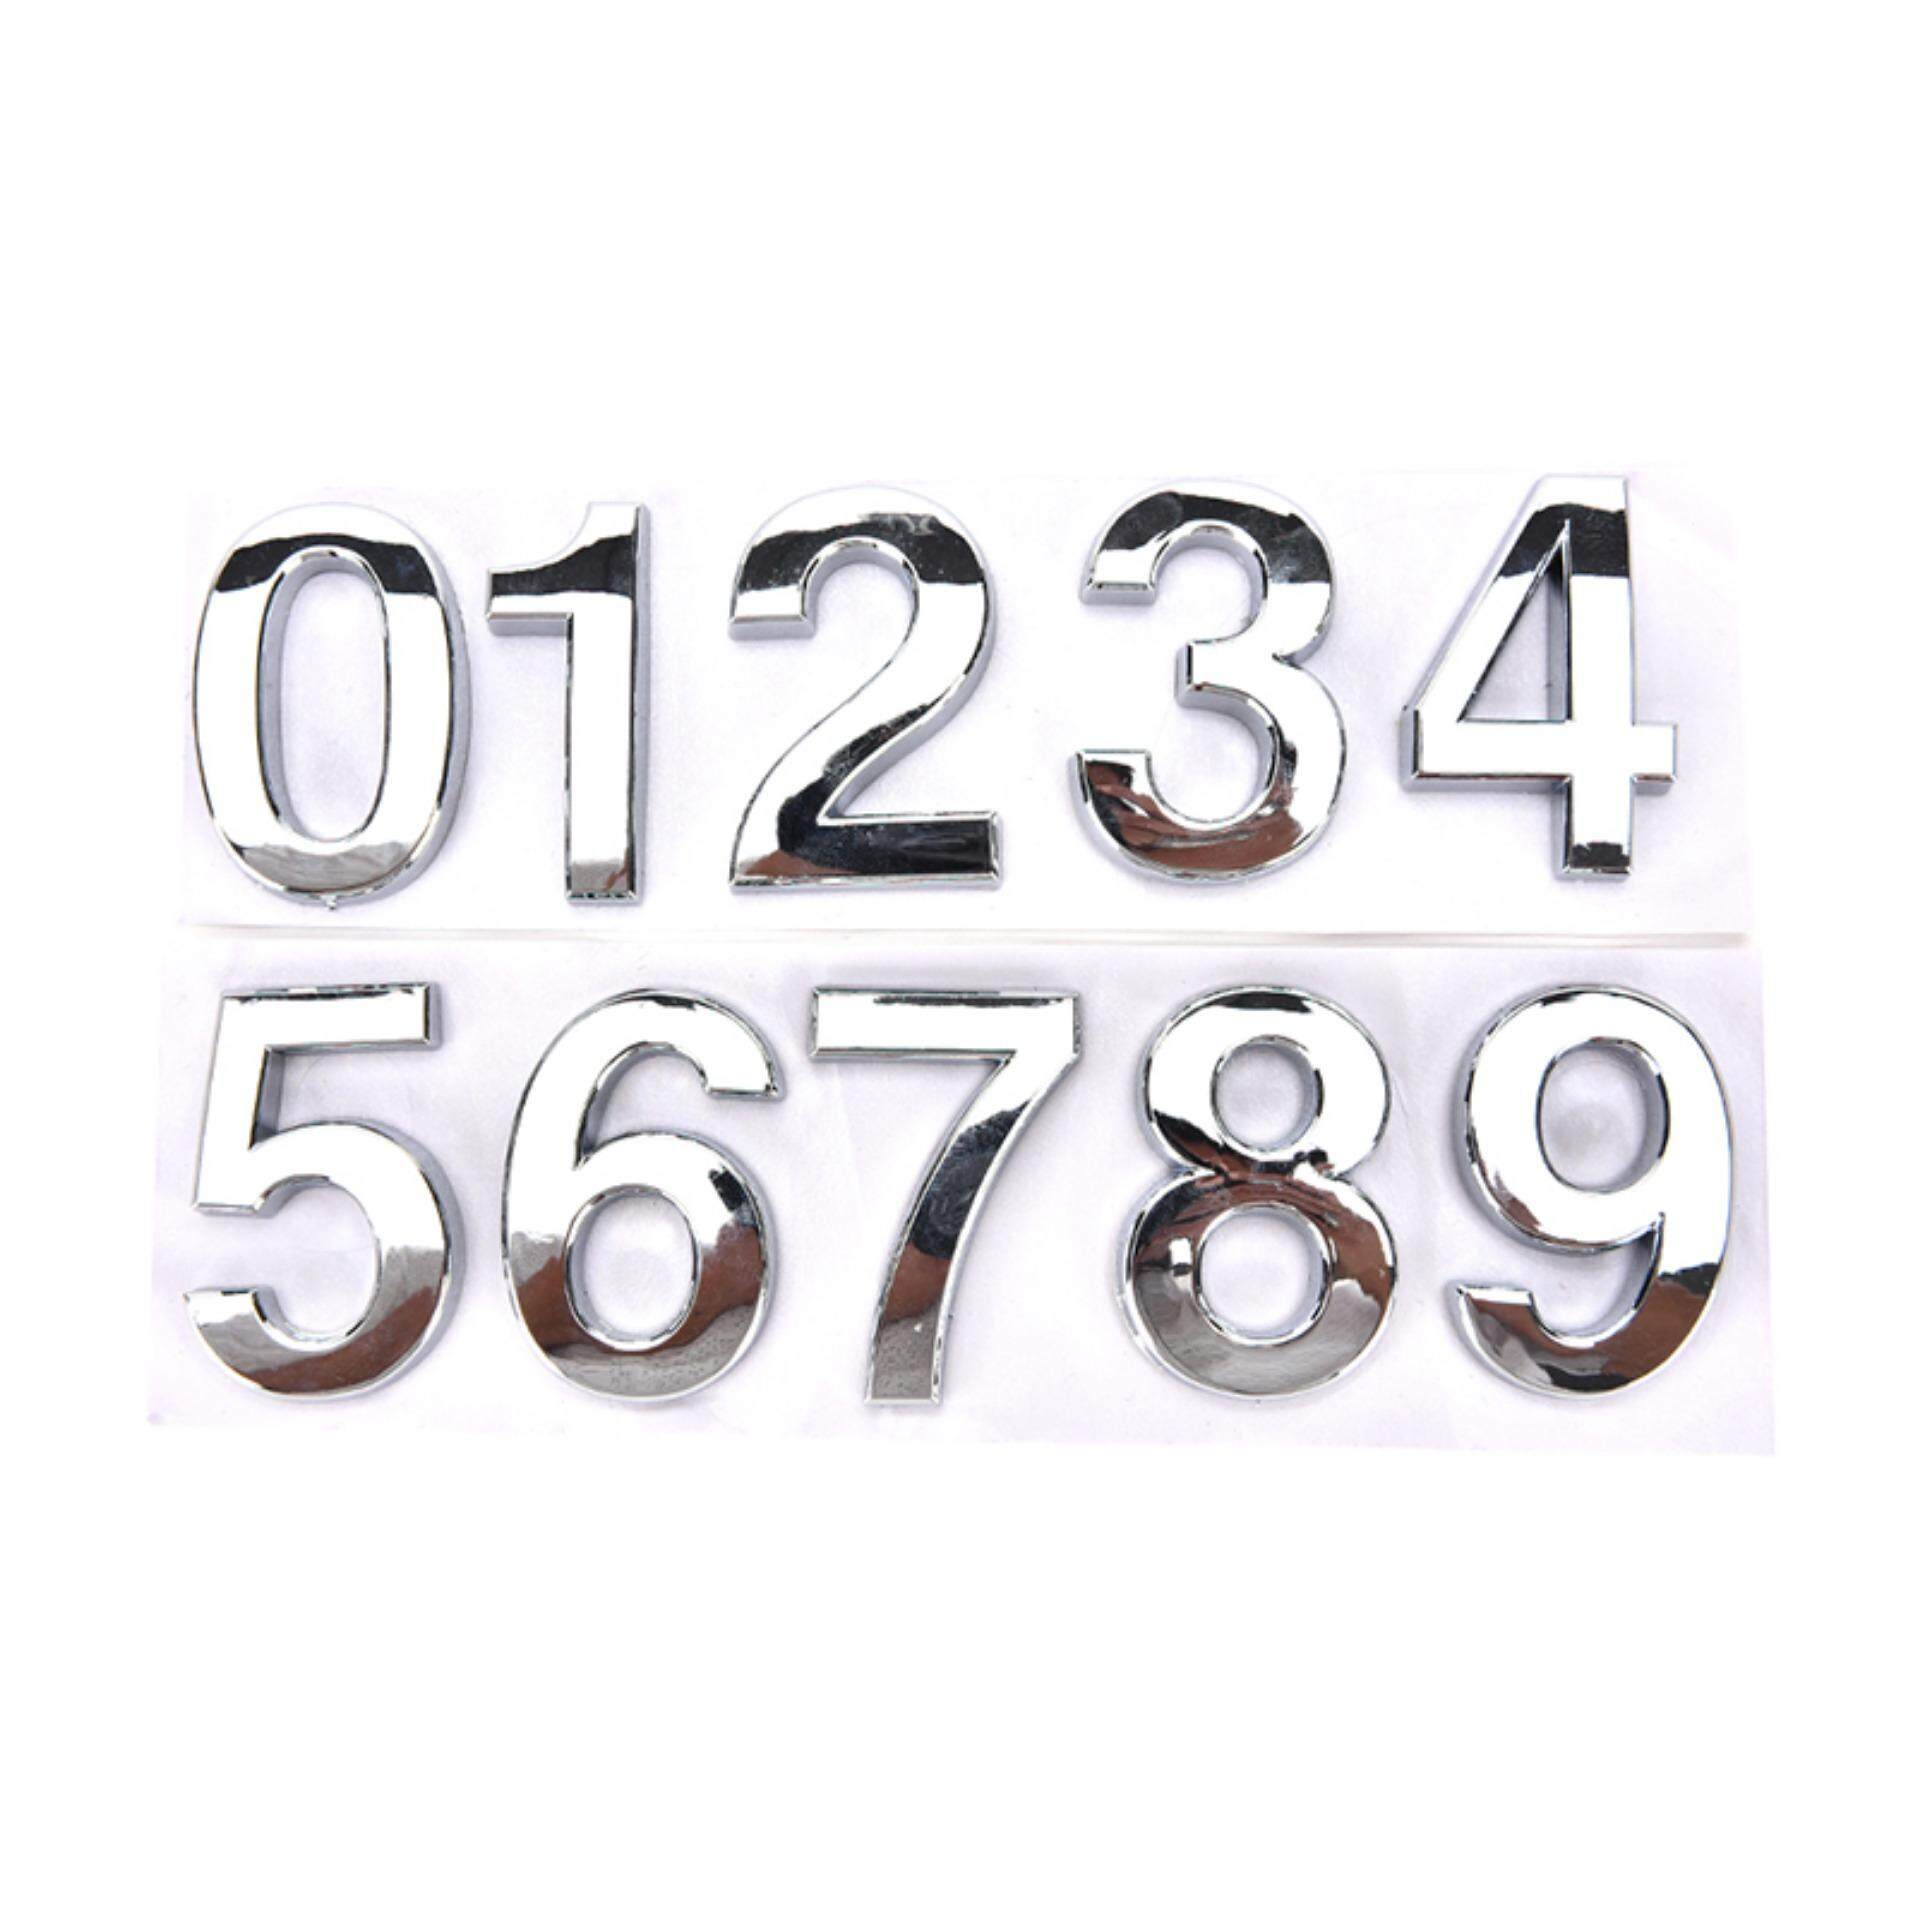 House Hotel Door Address Plaque Number Digits Sticker Plate Sign House Silver 1 - intl